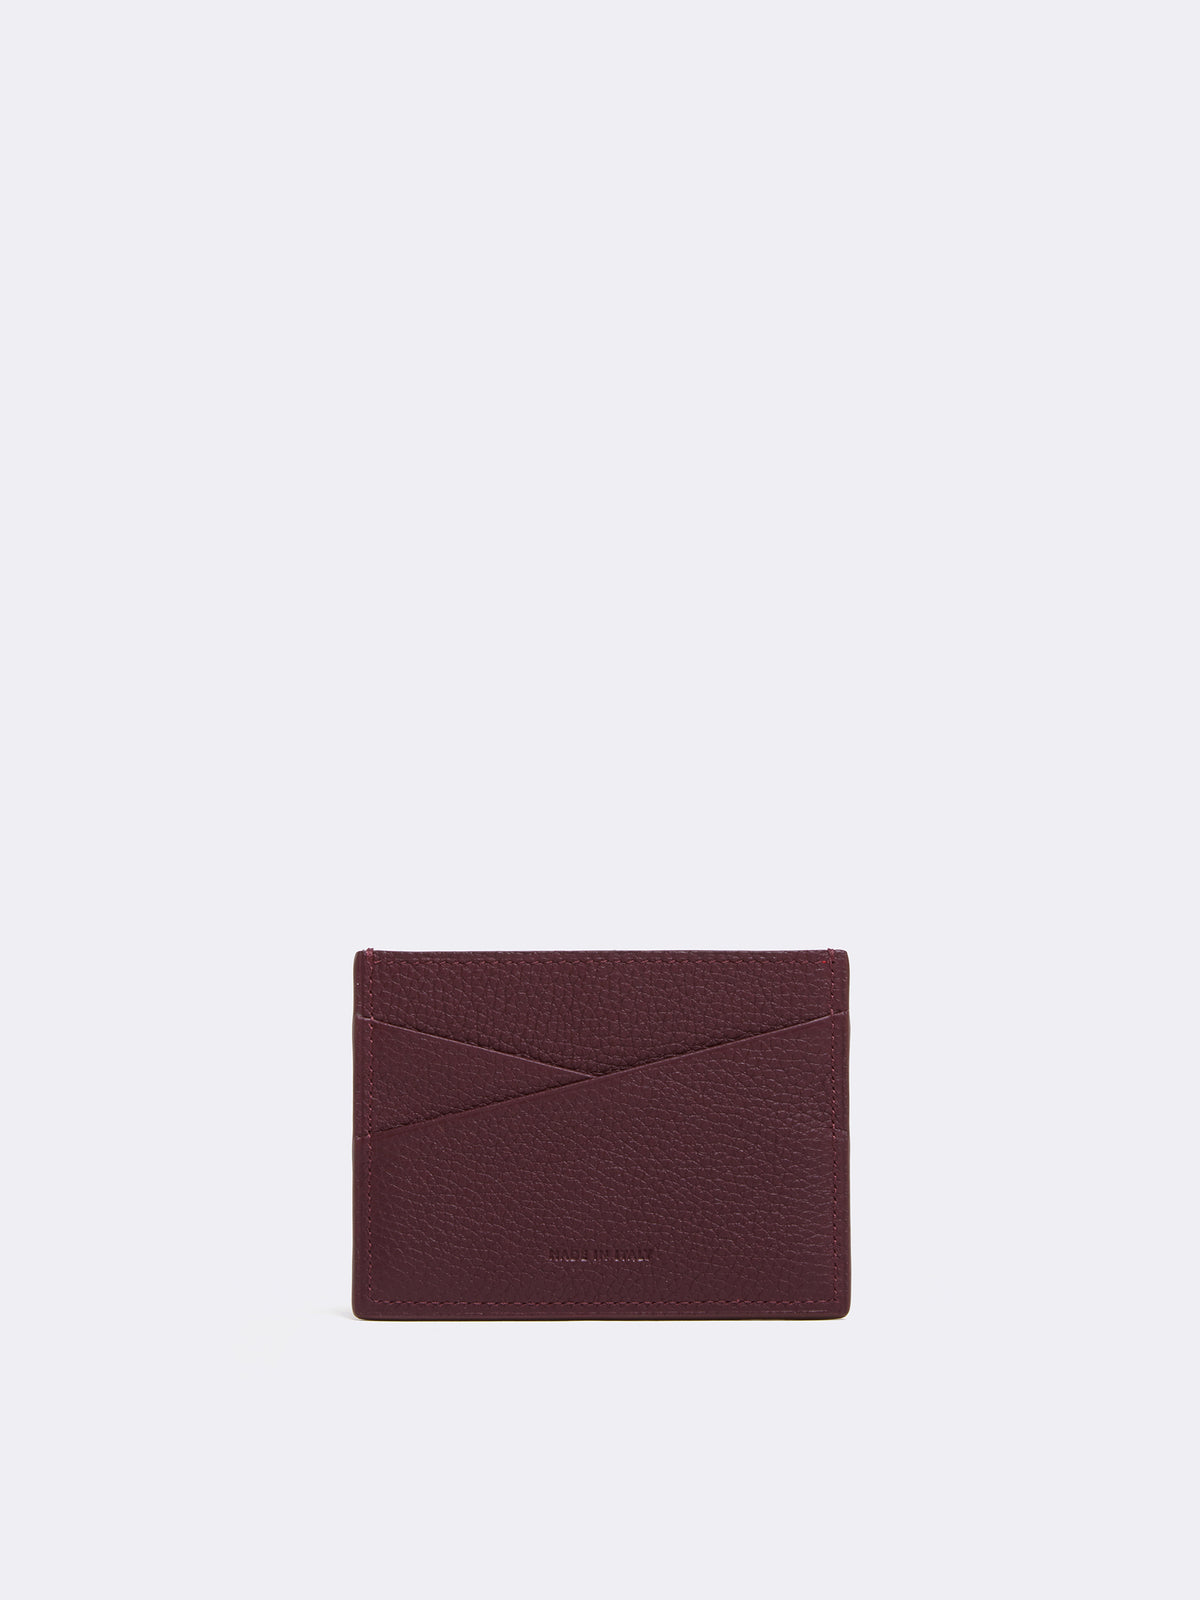 Mark Cross Leather Card Case Tumbled Grain Bordeaux Back